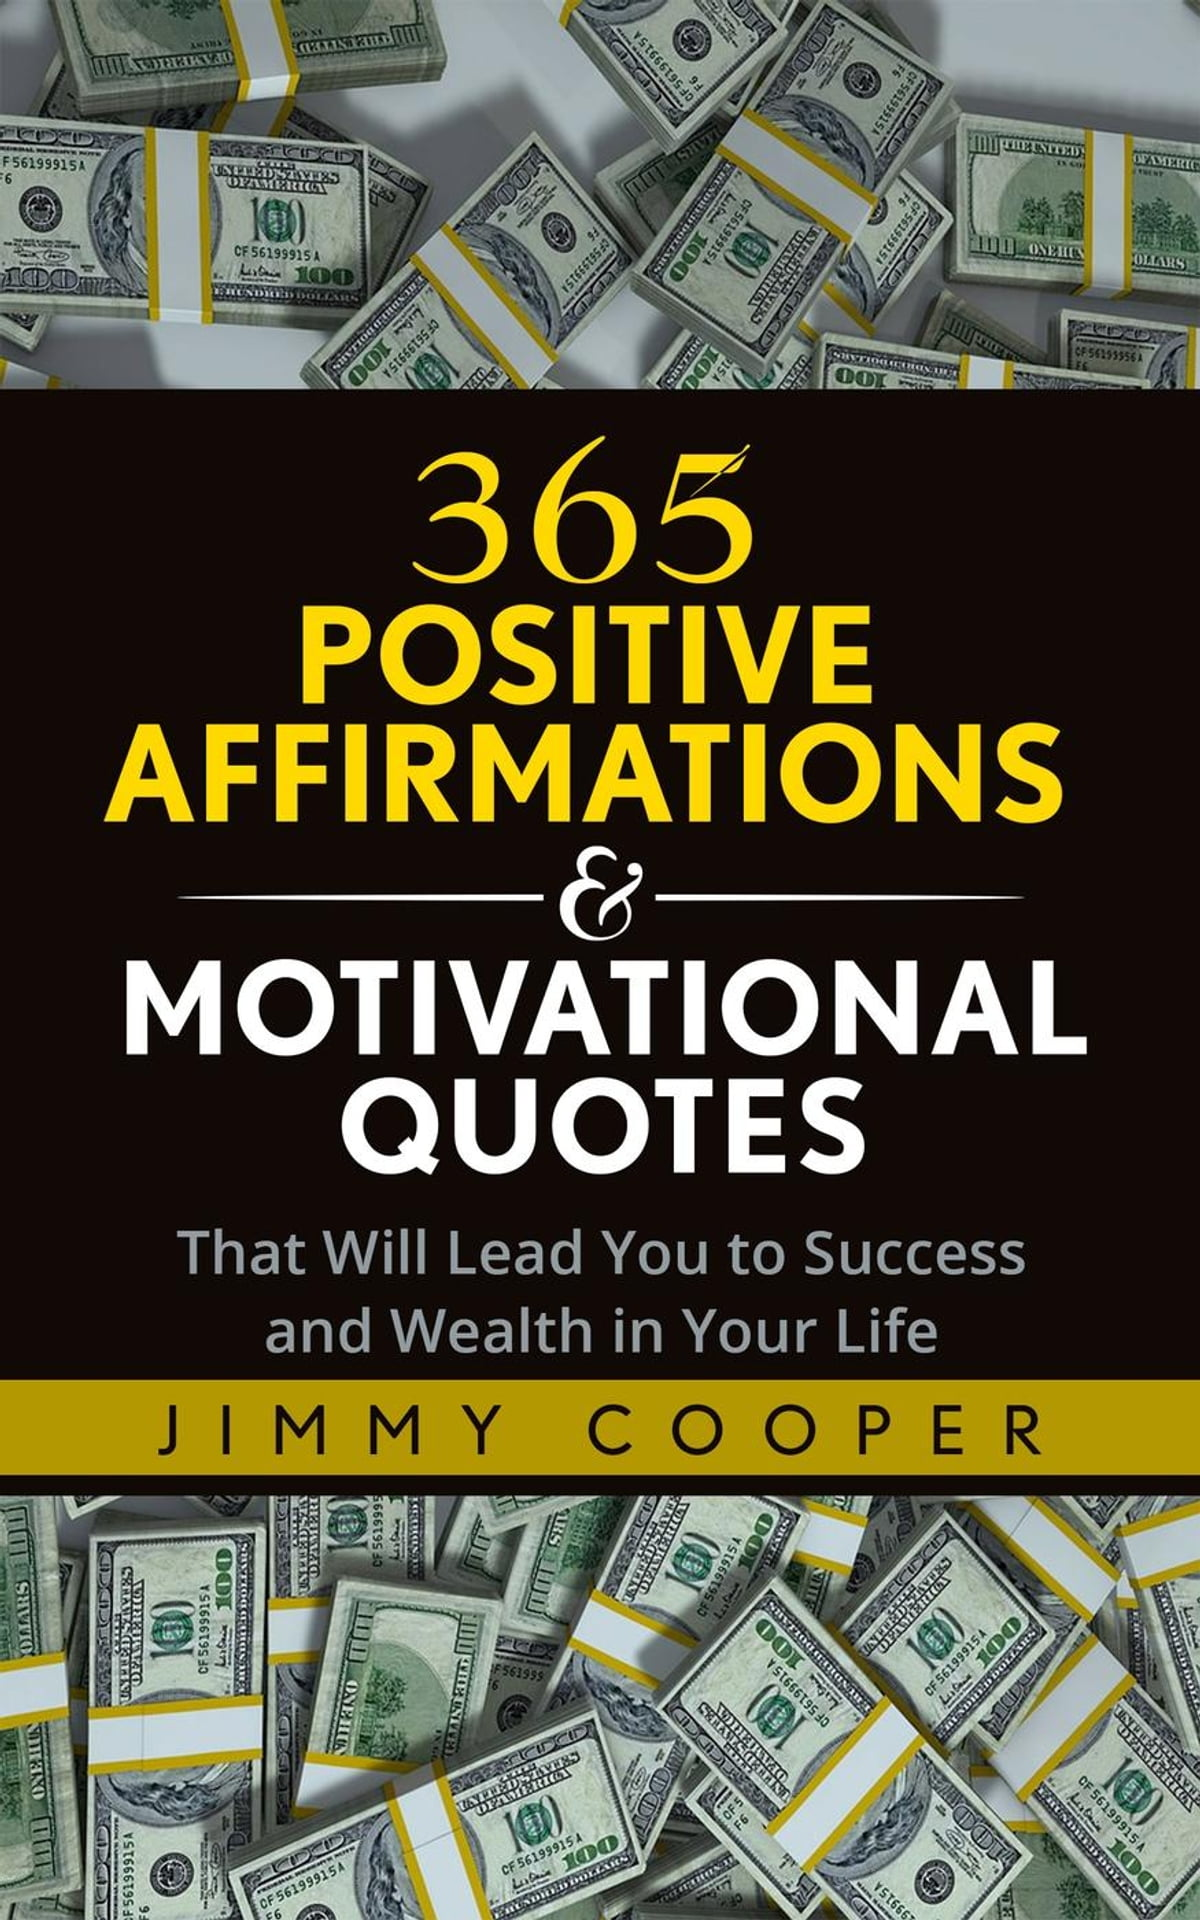 365 Positive Affirmations & Motivational Quotes That Will Lead You to  Success and Wealth in Your Life ebook by Jimmy Cooper - Rakuten Kobo